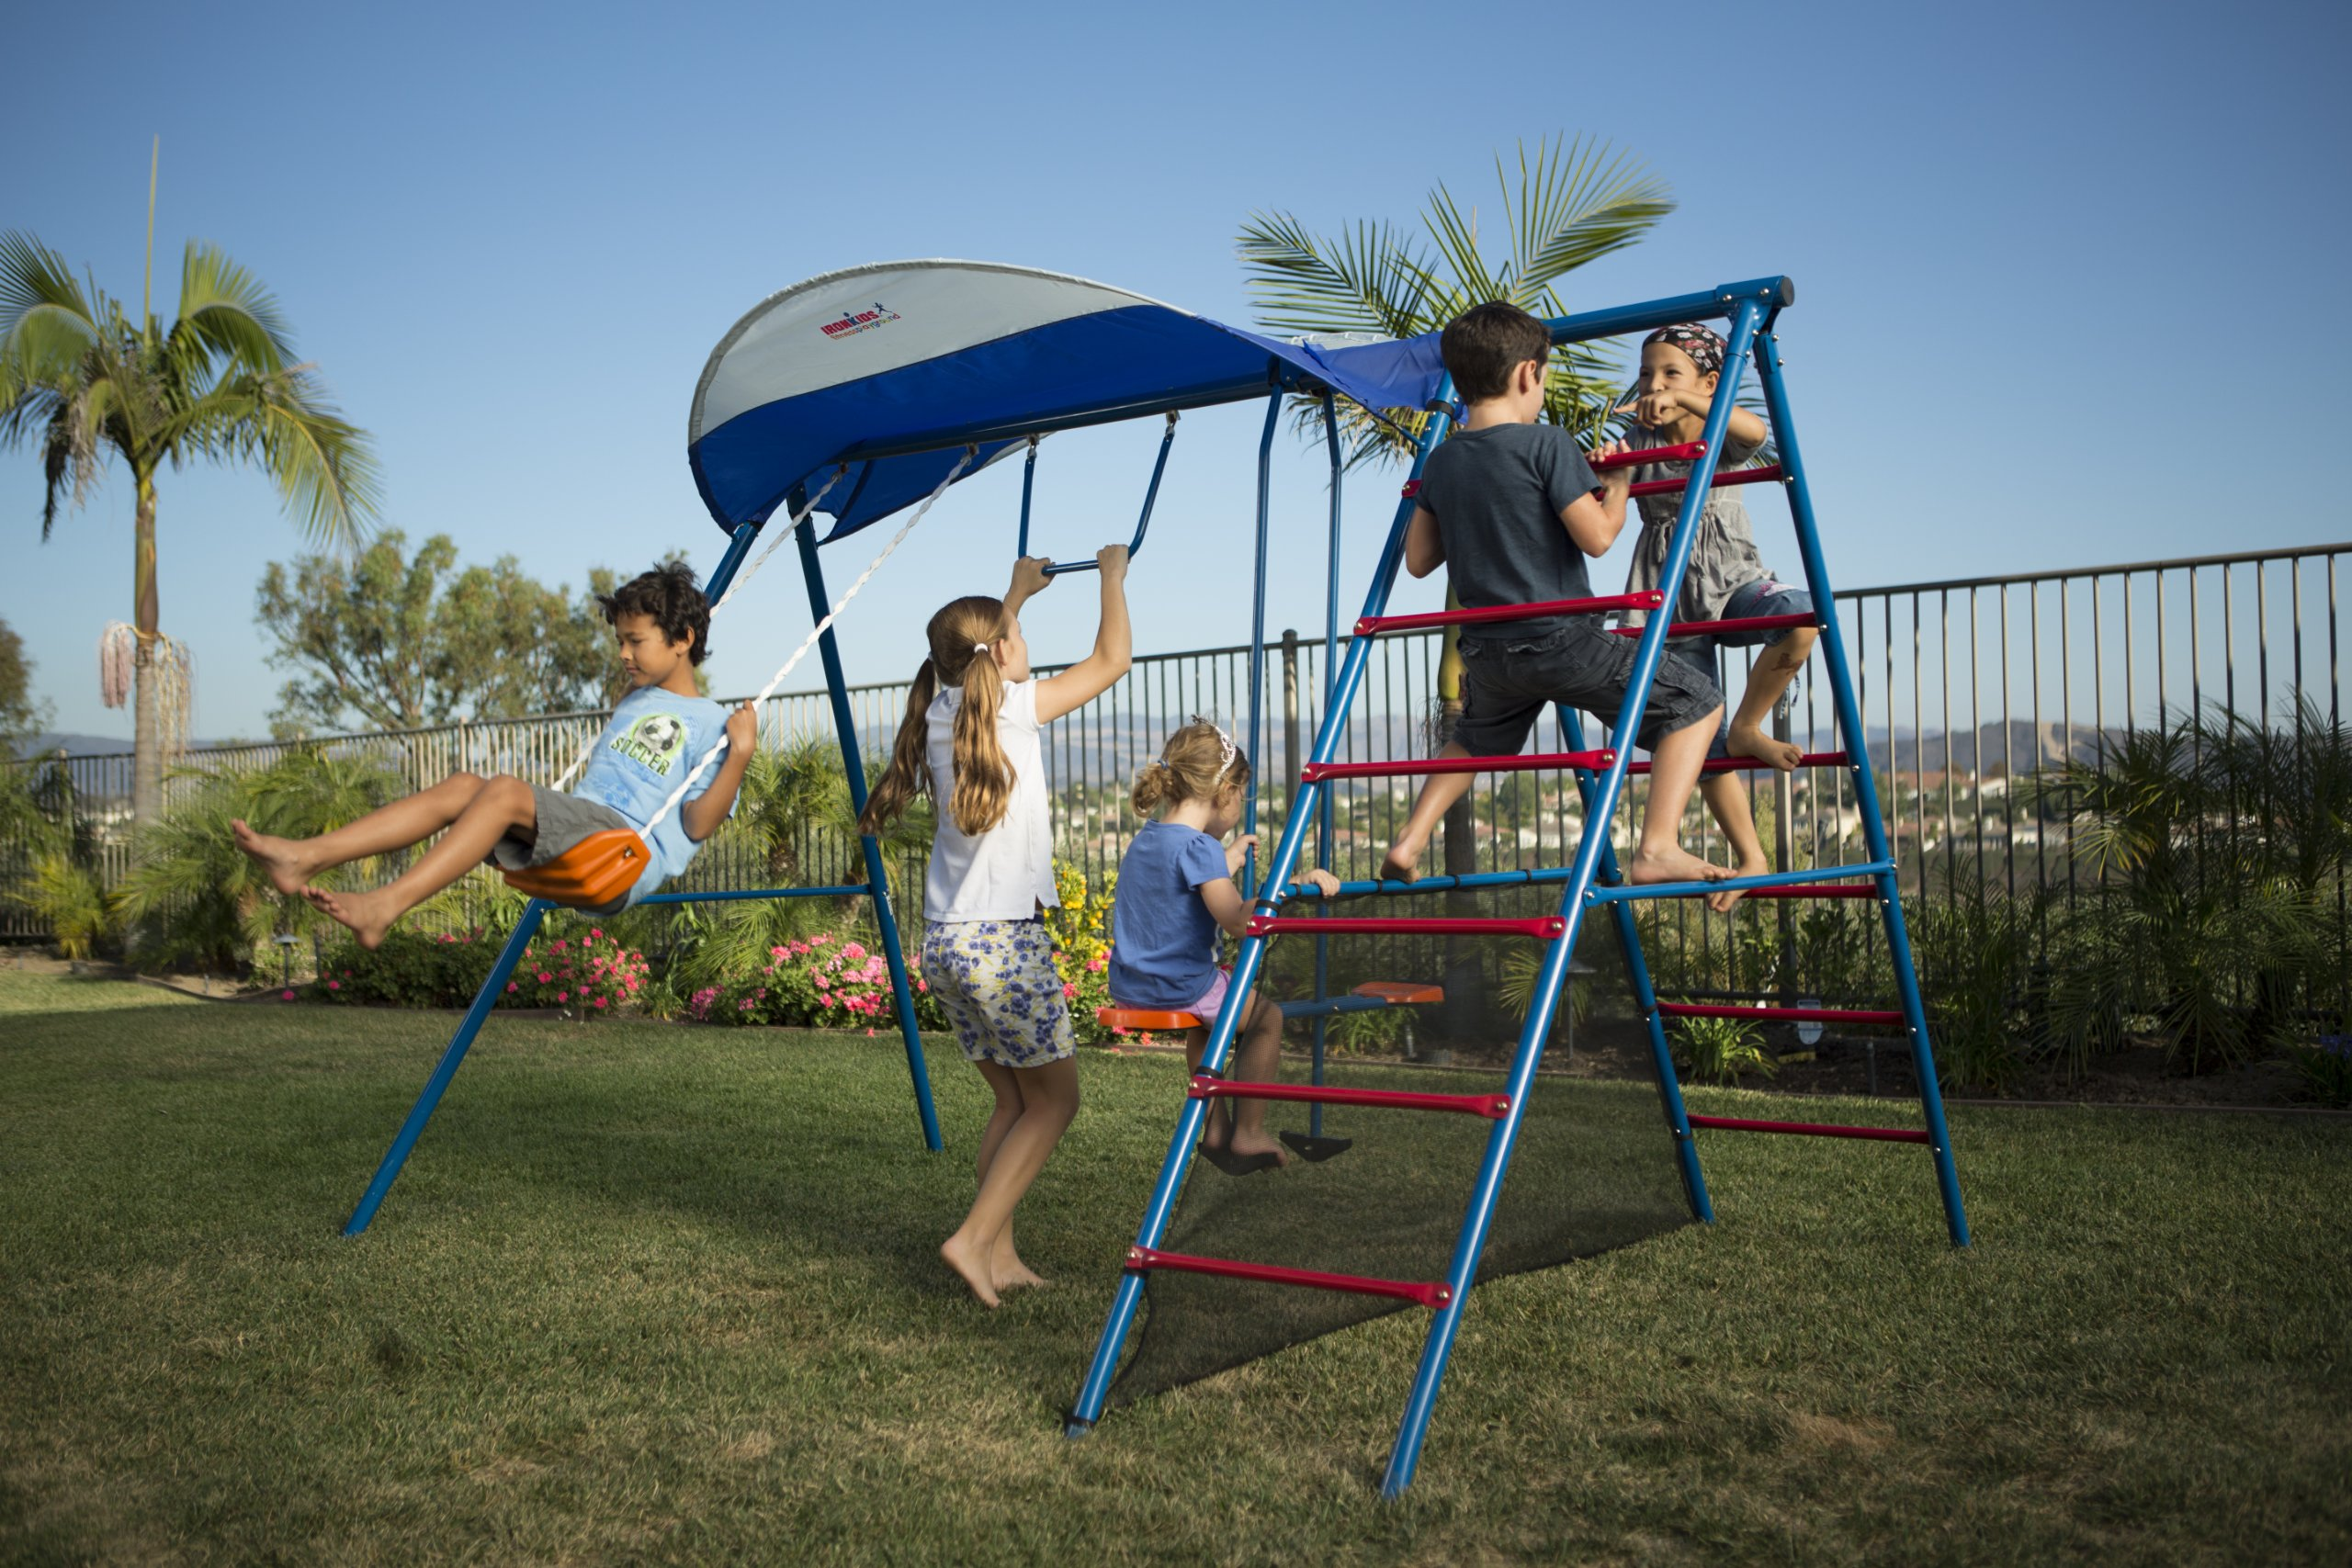 Ironkids Challenge 100 Metal Swing Set with Ladder Climber and UV Protective Sunshade by IRONKIDS (Image #3)